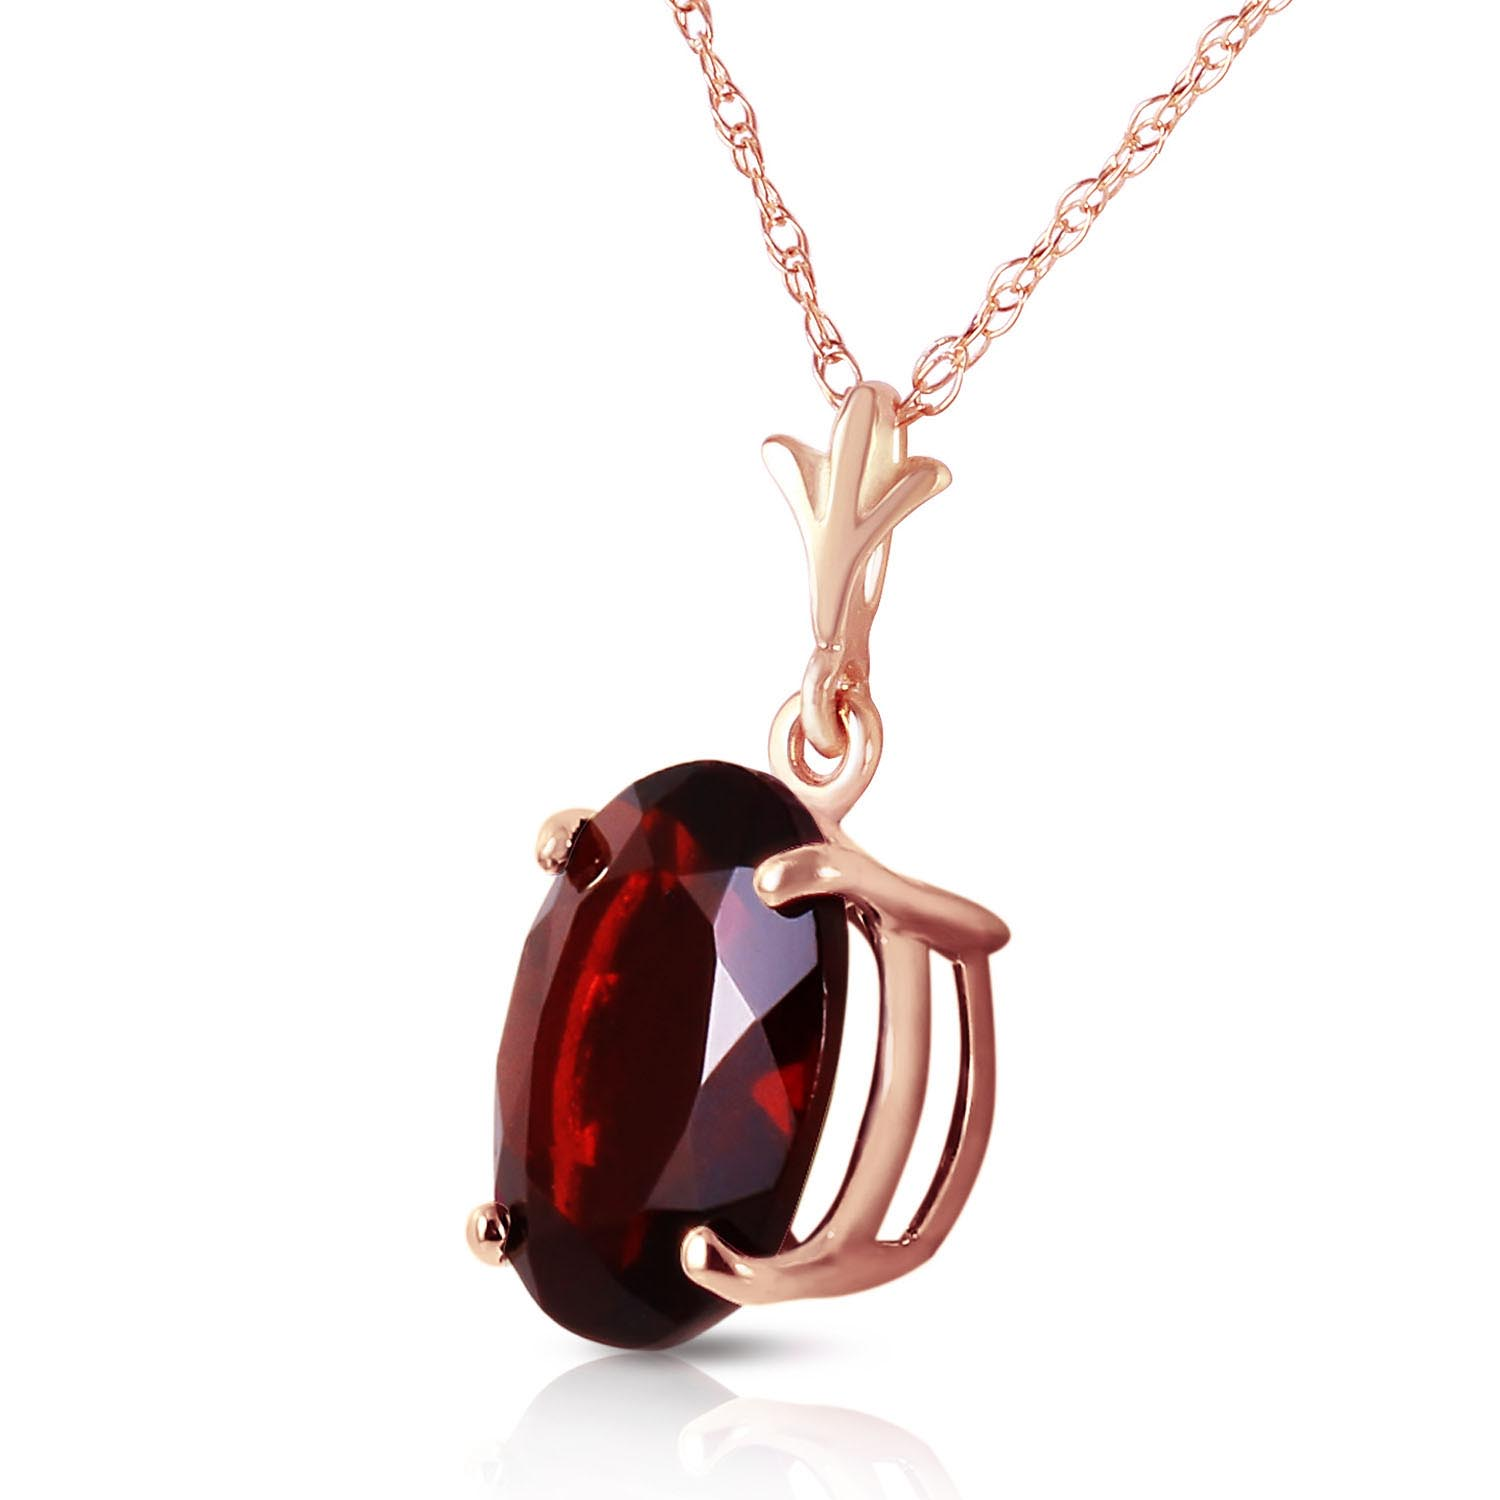 Oval Cut Garnet Pendant Necklace 3.12ct in 14K Rose Gold